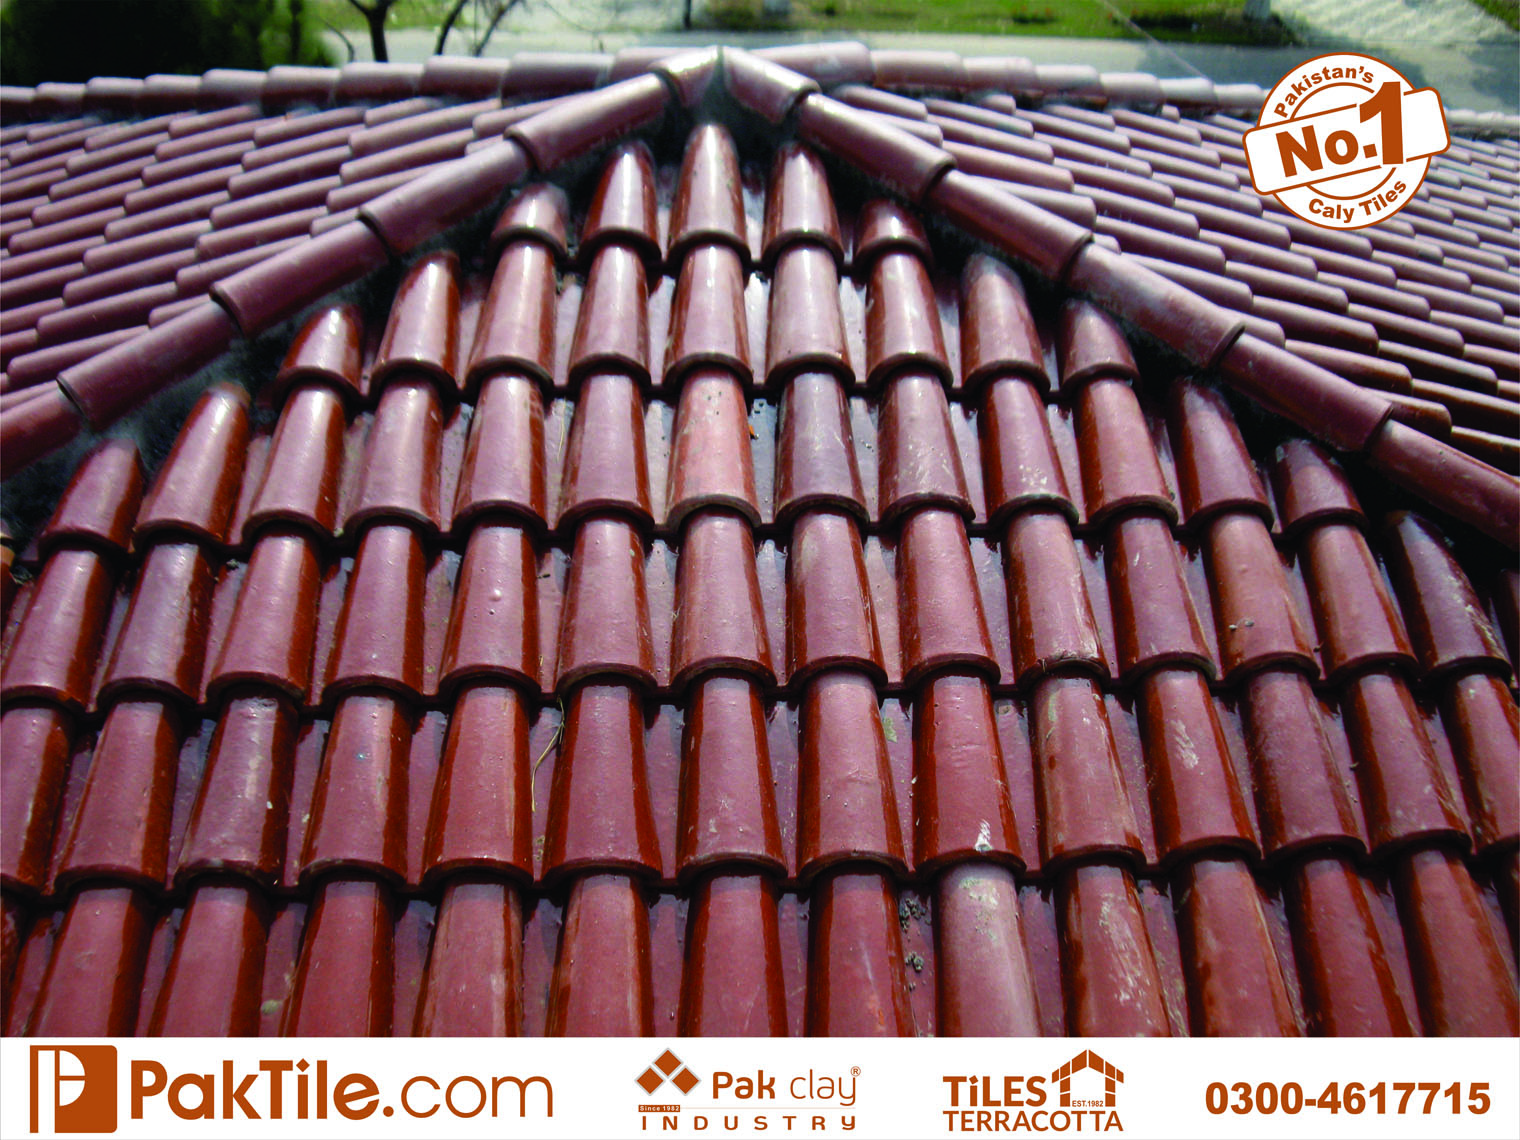 4 High Quality Natural Glazed Khaprail Roofing Tiles Patterns Types and Price in Rawalpindi Pakistan Images